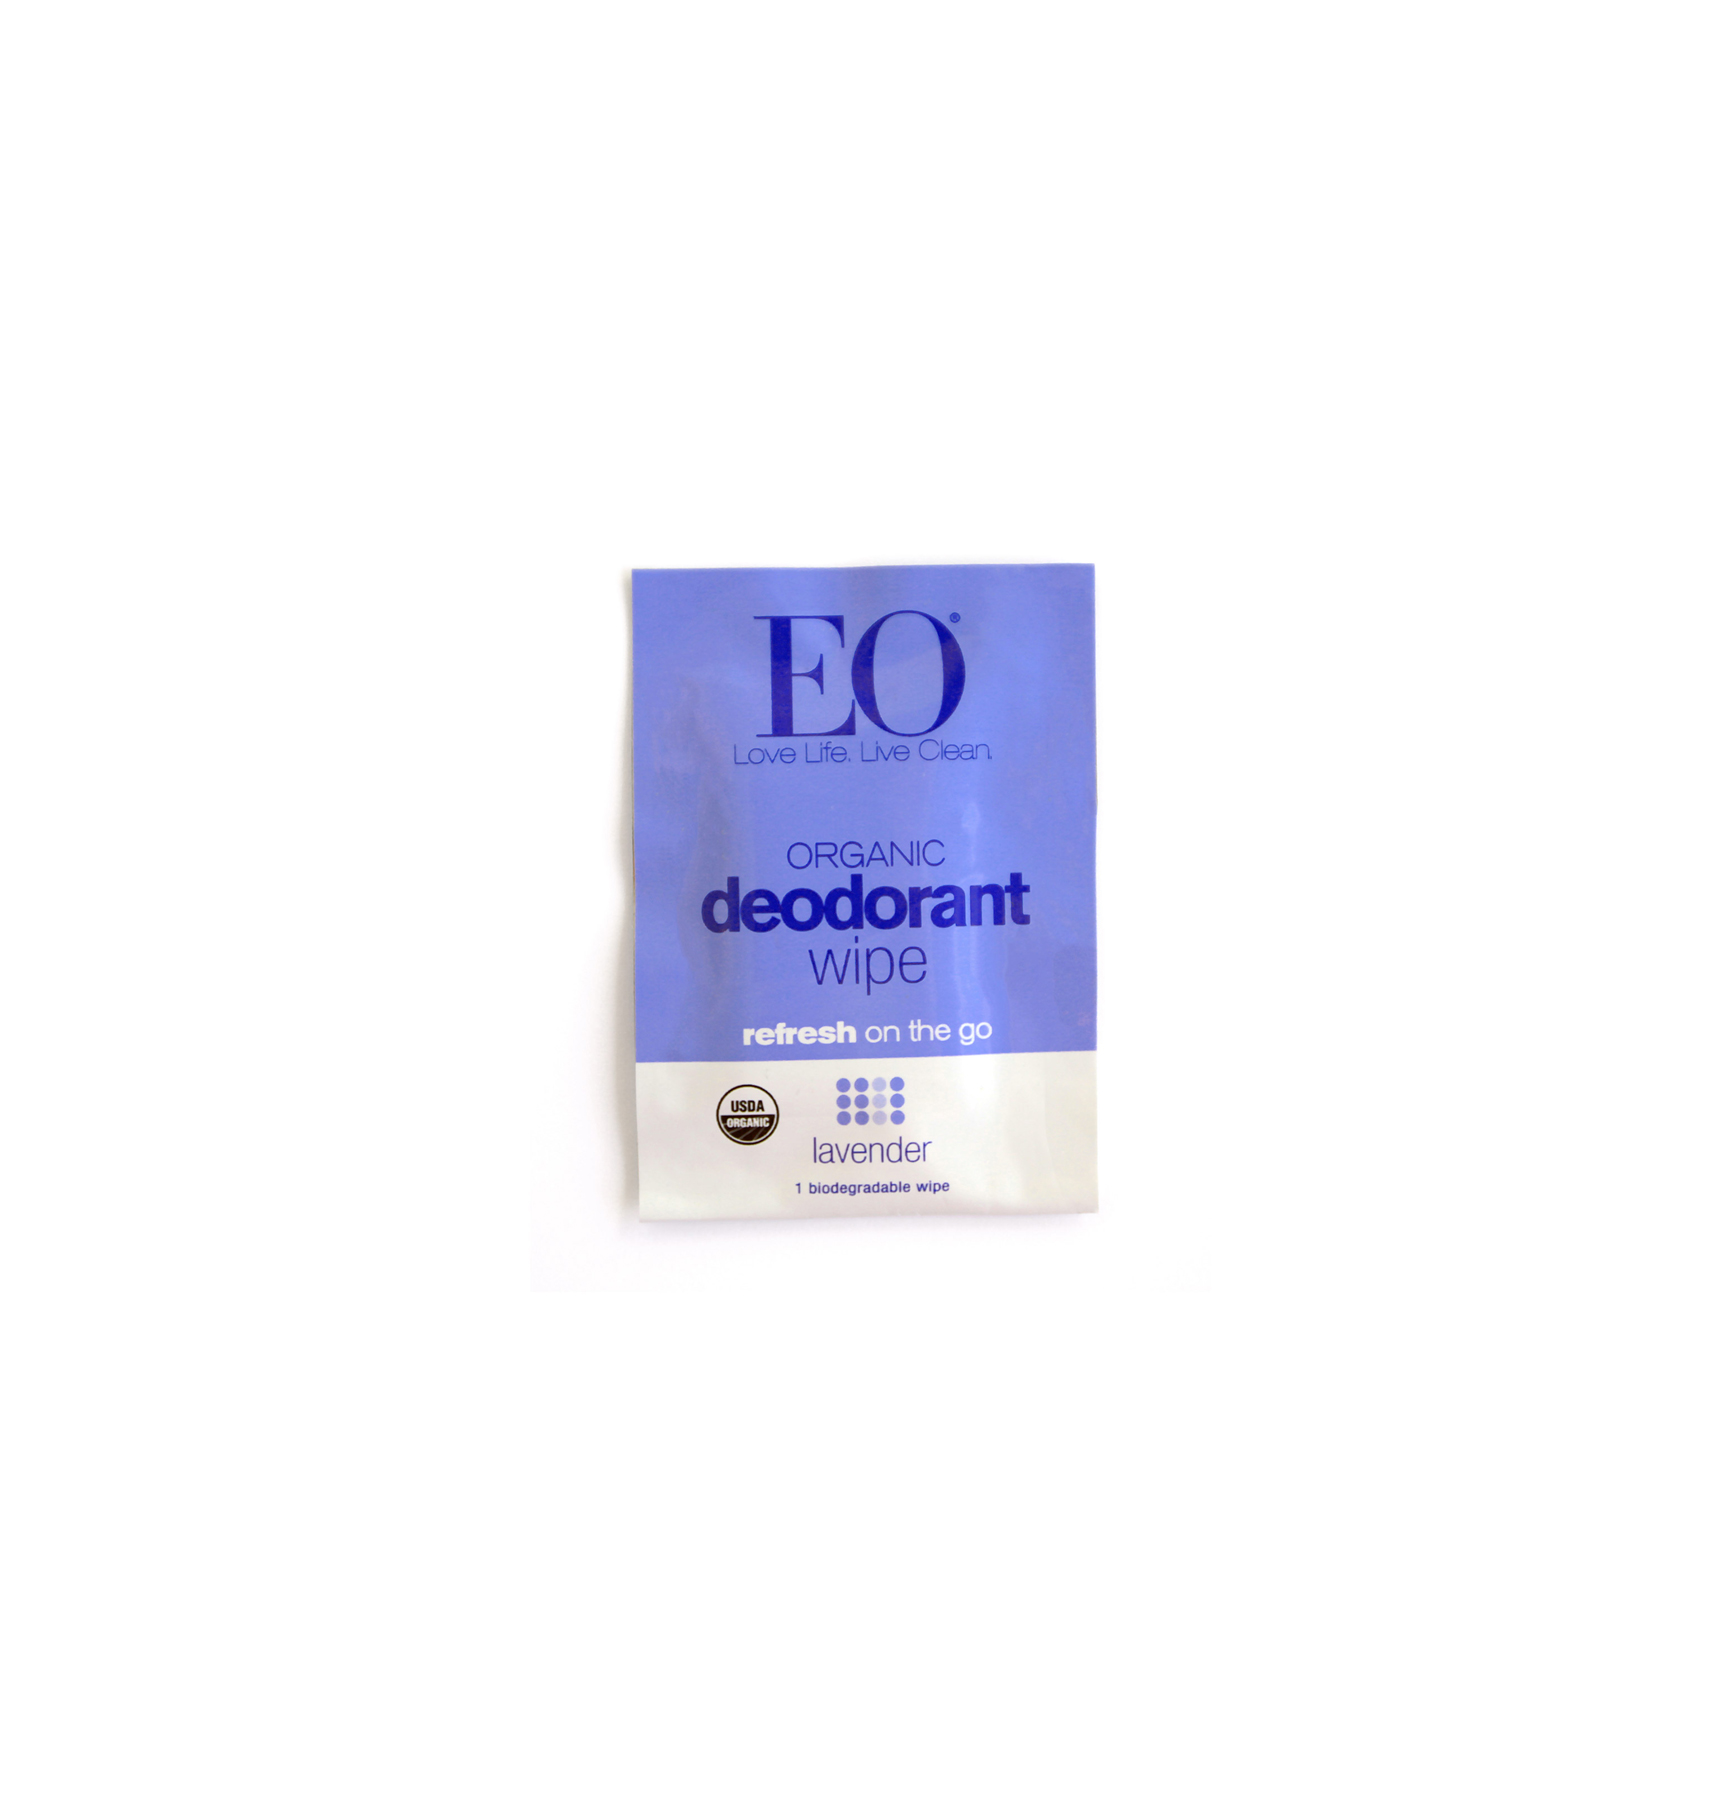 Gym bag essentials and luxuries - EO Natural Deodorant Wipes in Lavender